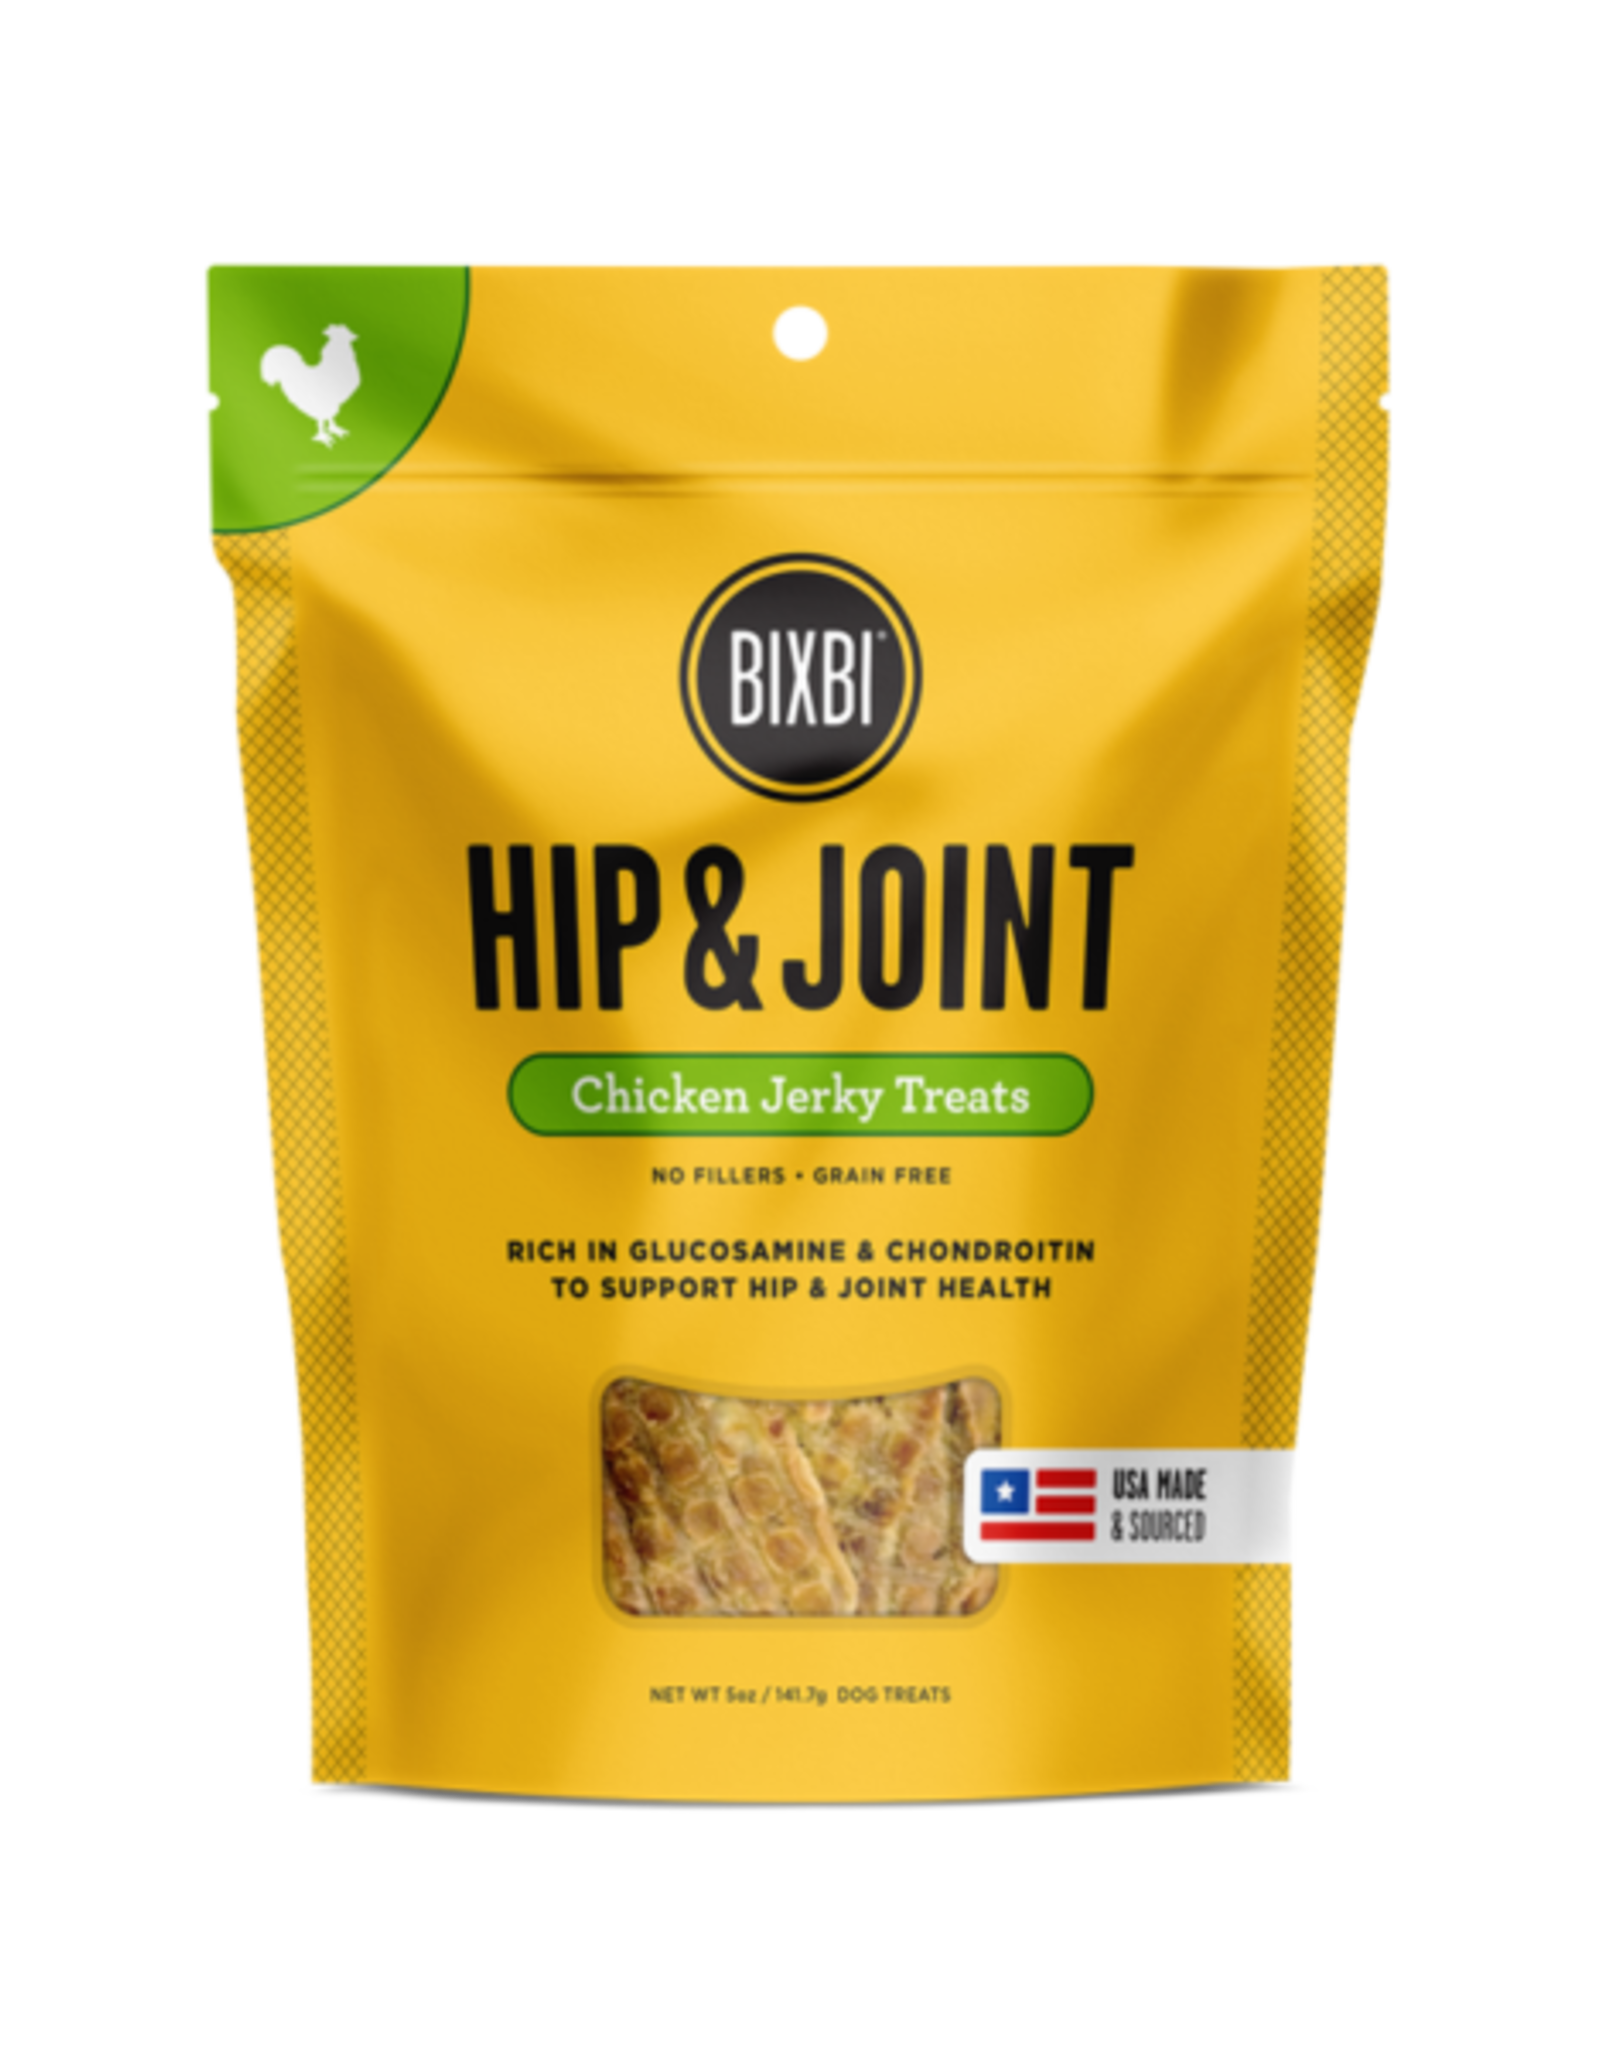 Bixbi Hip & Joint Chicken 5oz